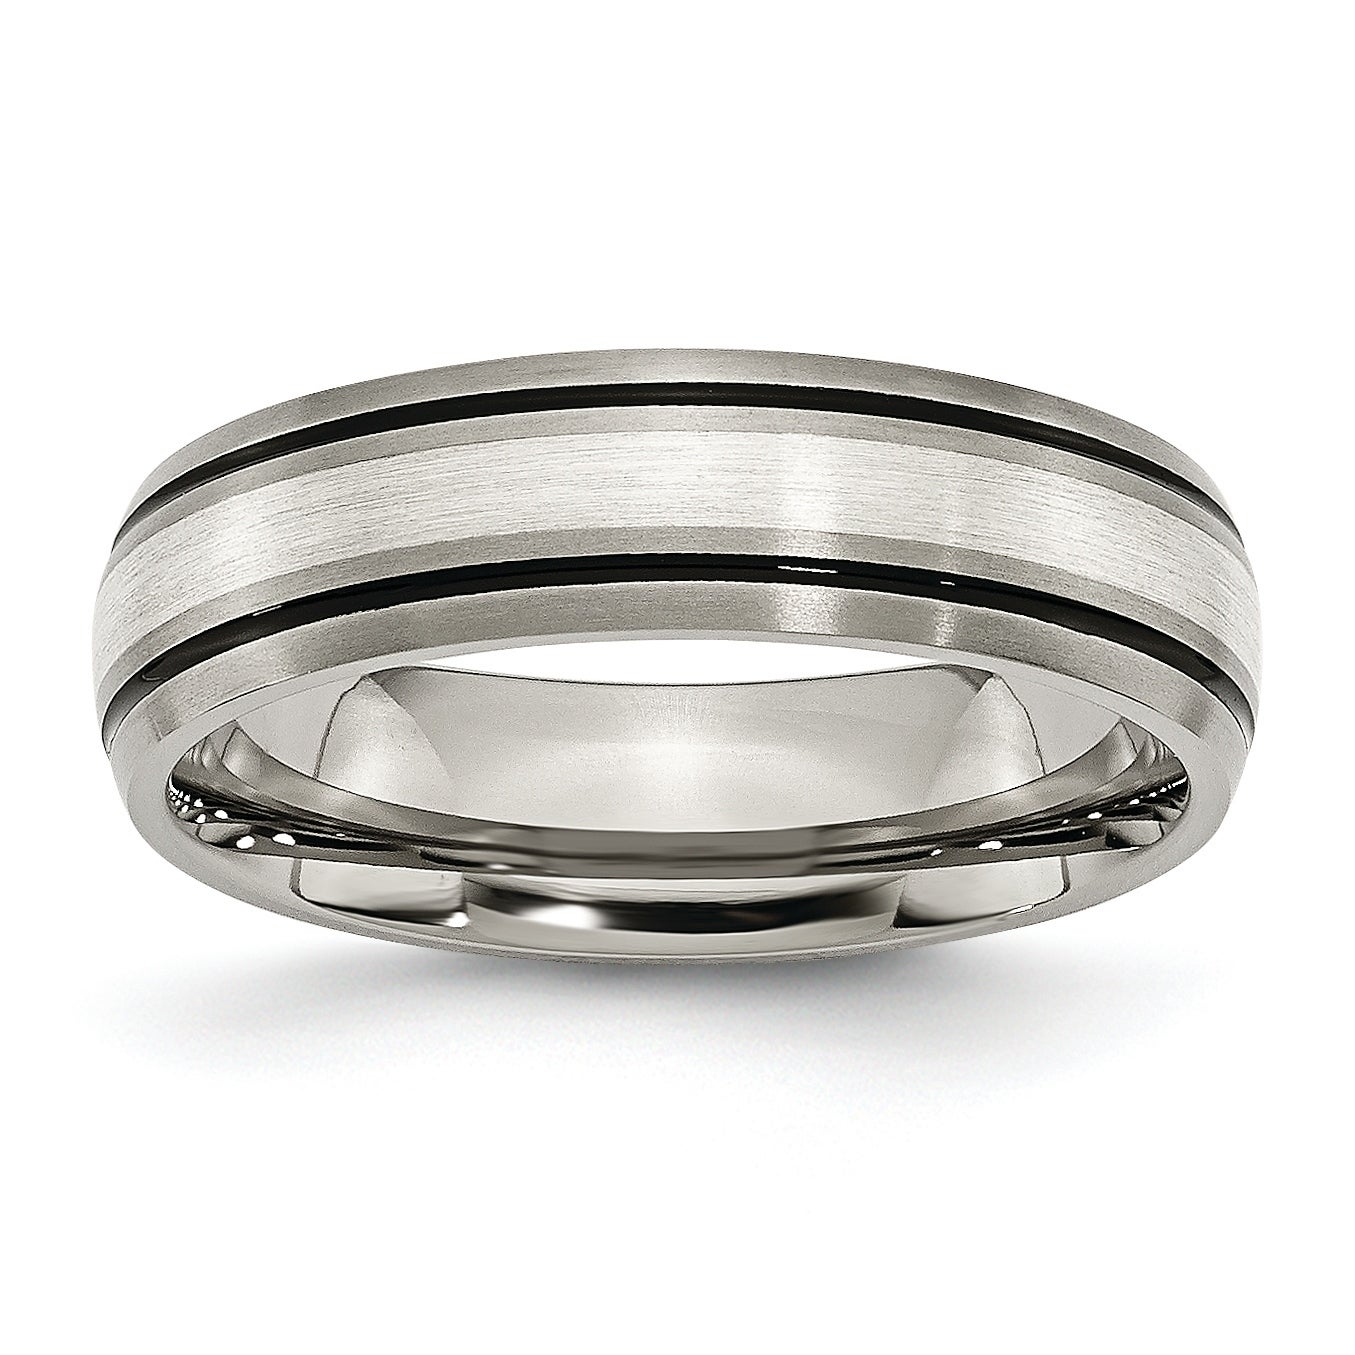 Titanium Grooved Edge 6mm Brushed and Polished Band Size 9.5 Length Width 6